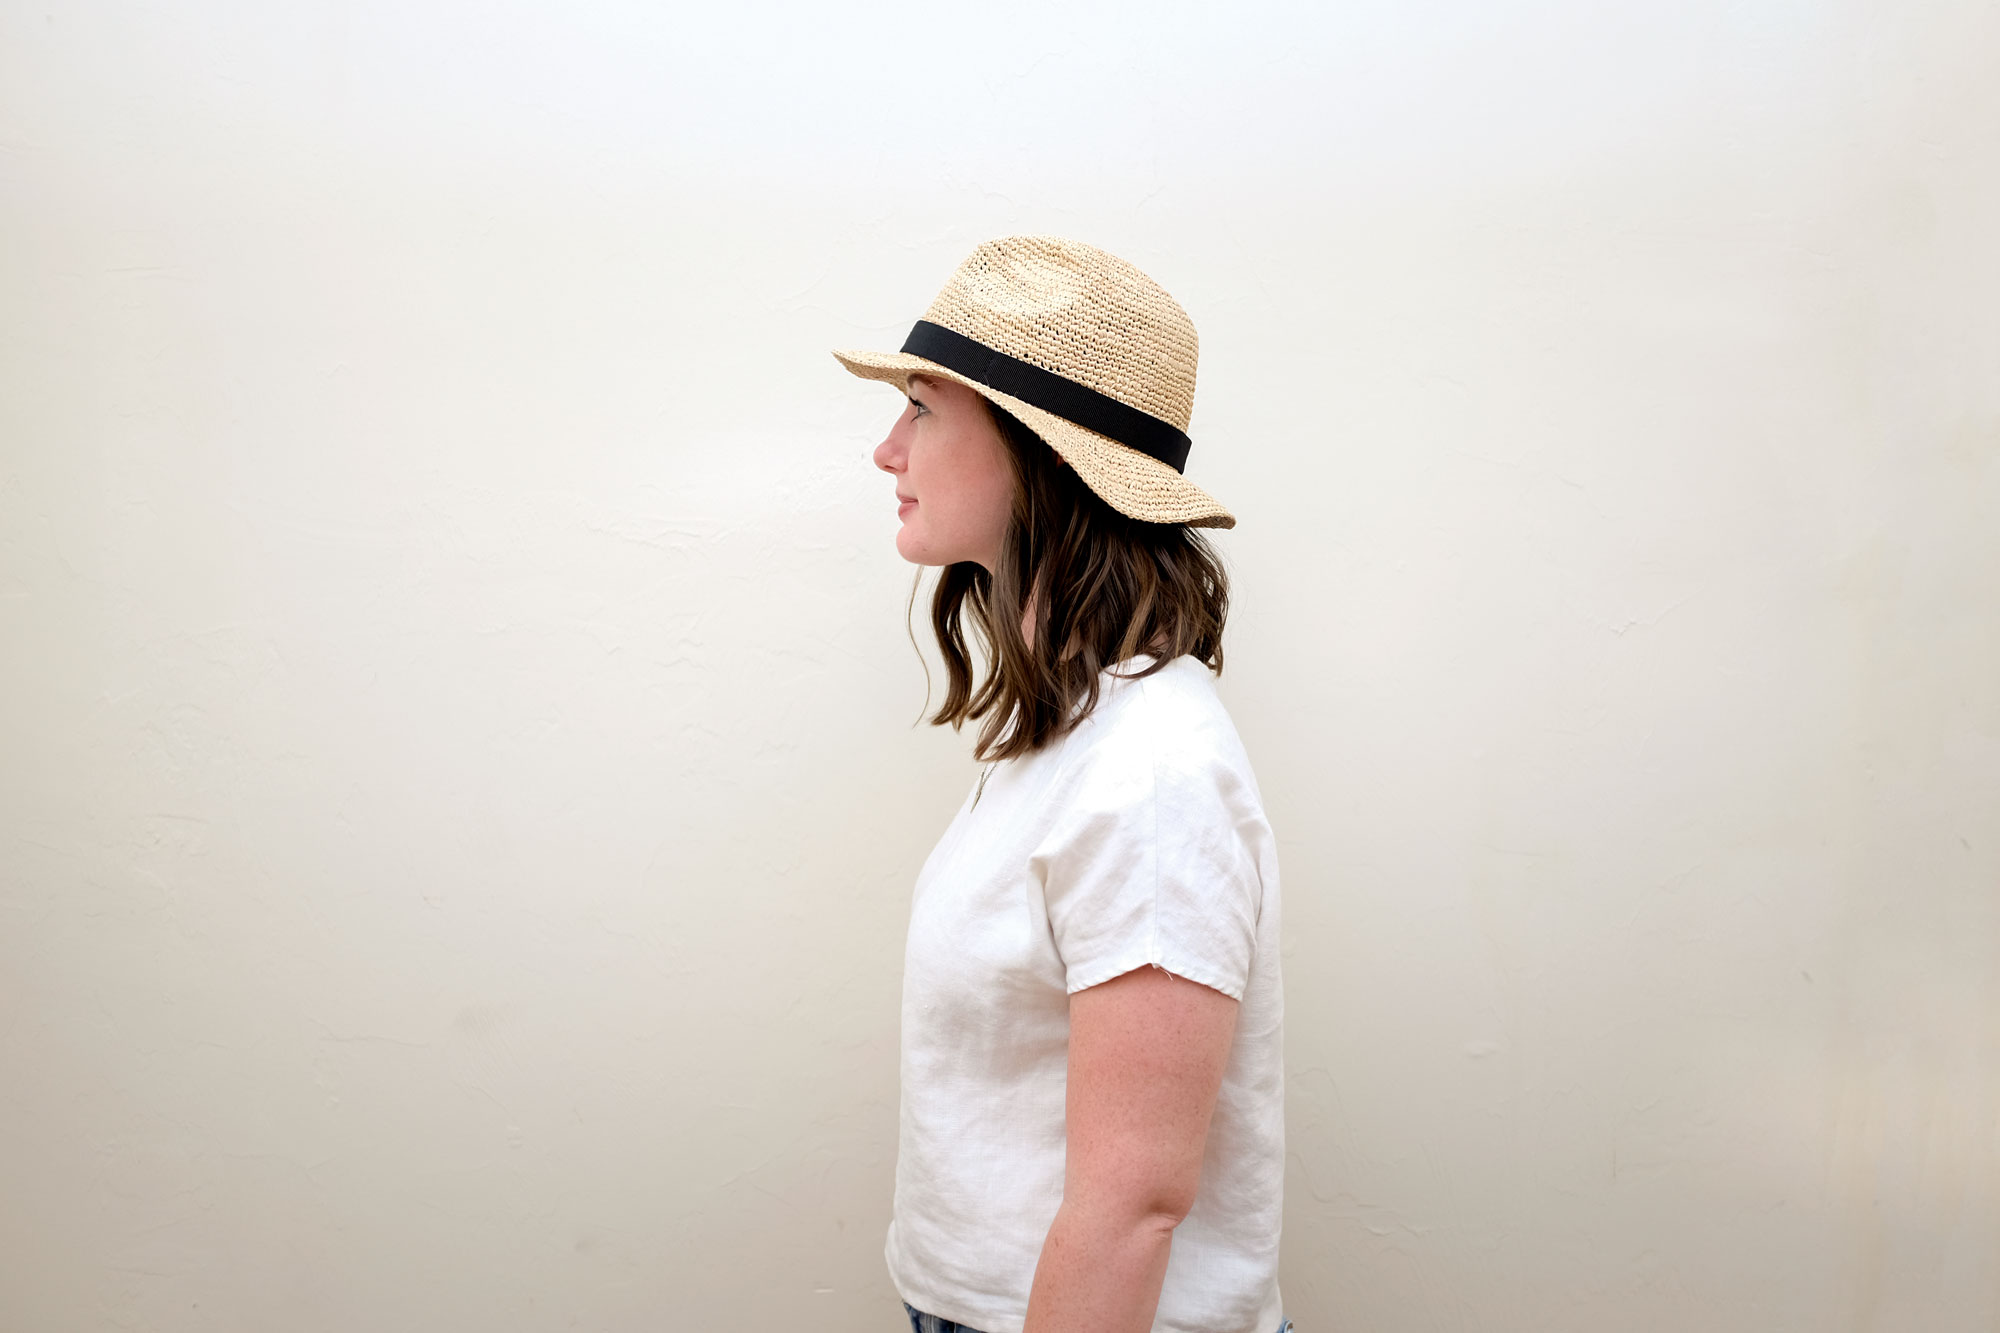 b3102b044472 Home Try-On: Three Packable Straw Hats Under $100 | wayward